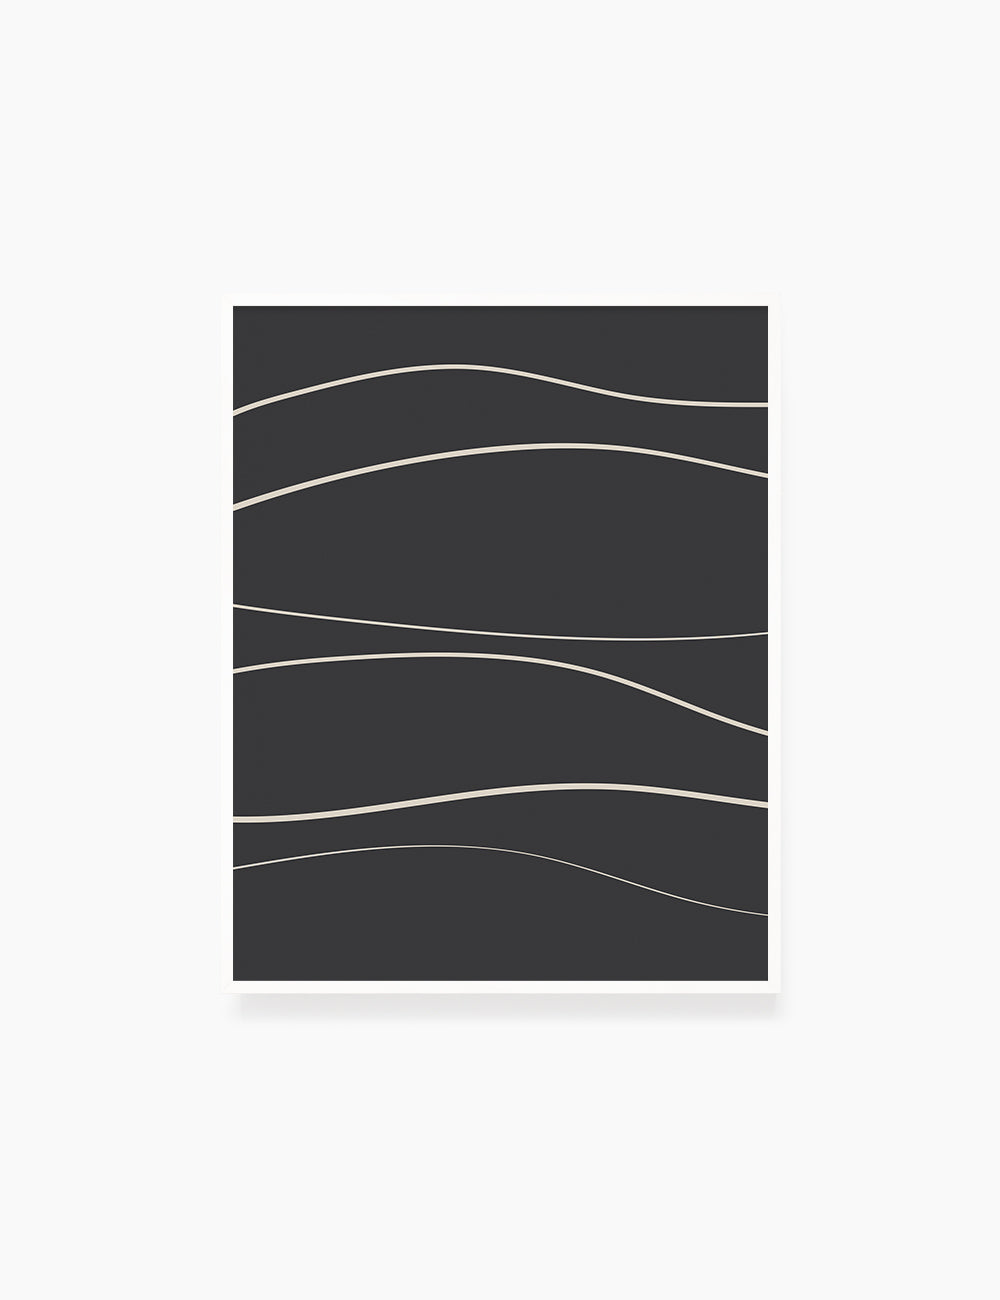 MINIMAL LINE ART. Abstract Waves. Boho. Black and White. Printable Wall Art Illustration. - PAPER MOON Art & Design